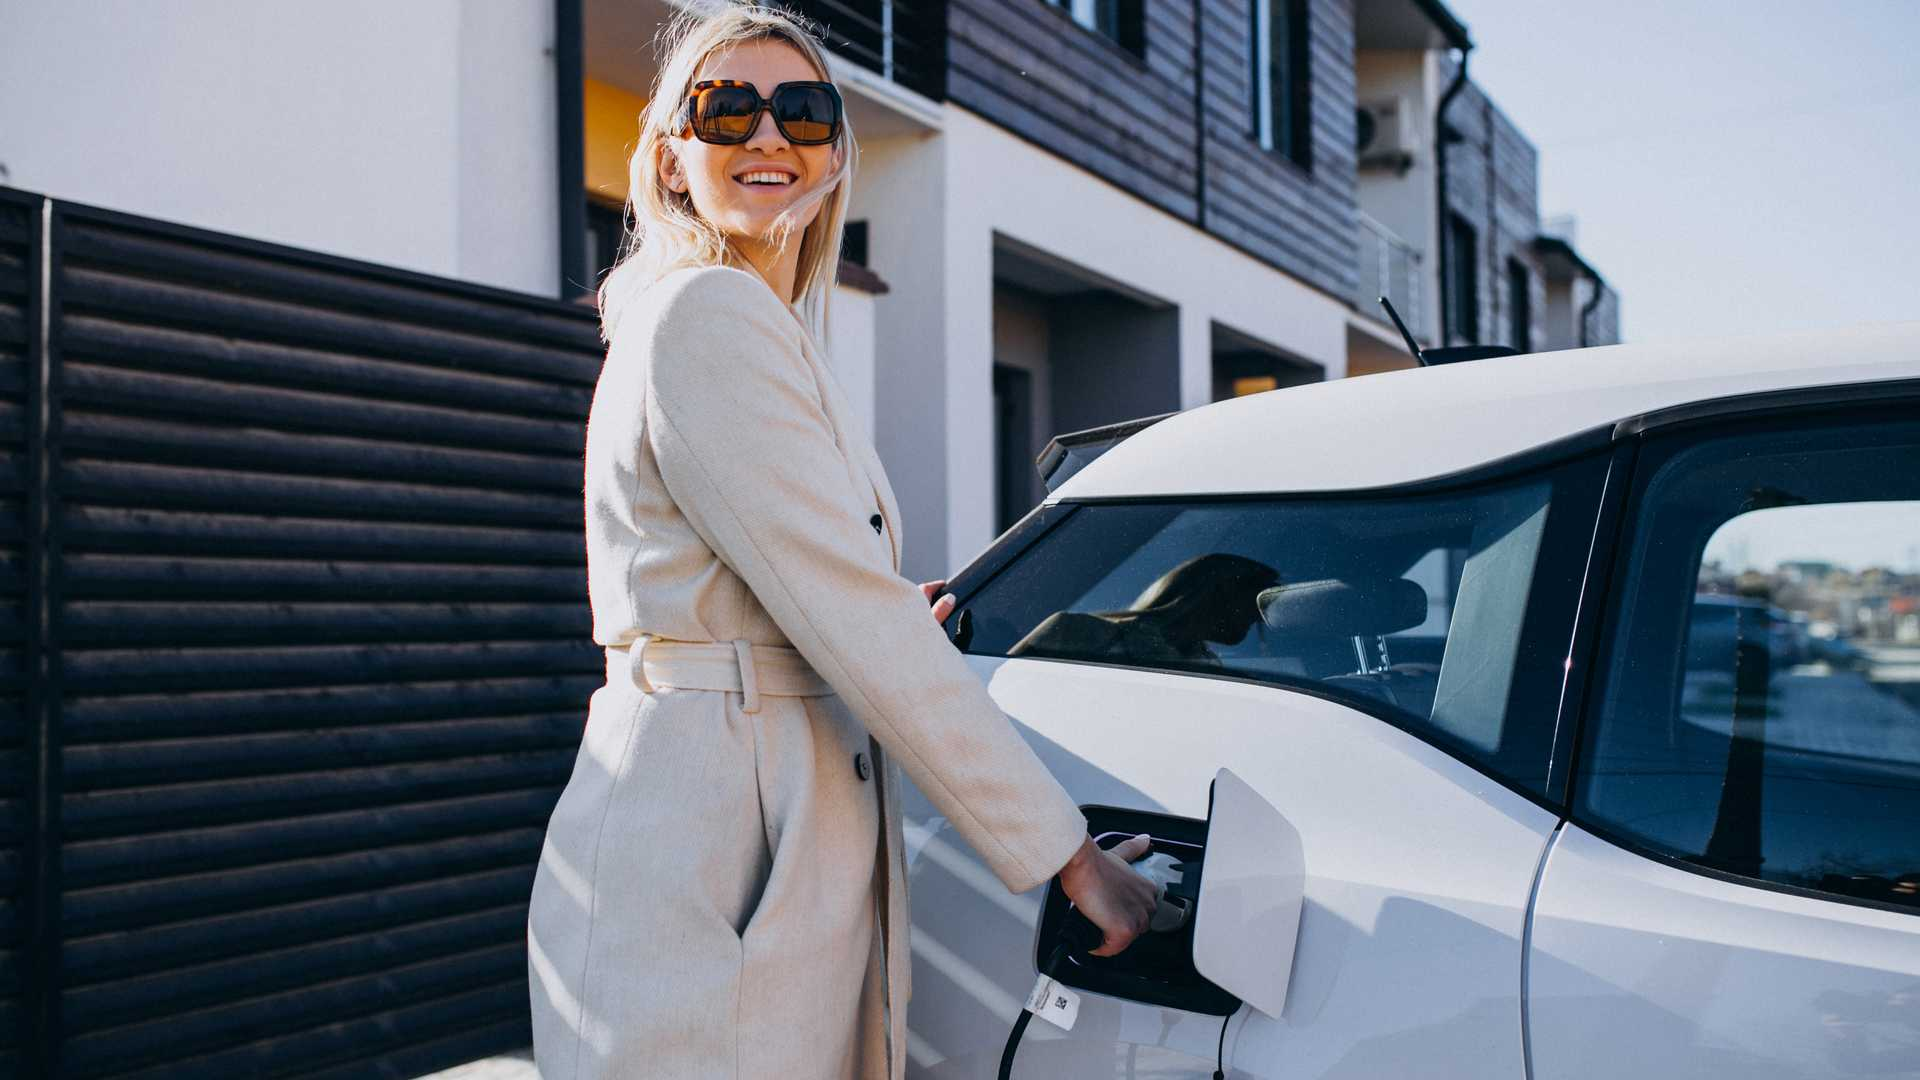 Homes with charging points can make more money renting out their parking spaces